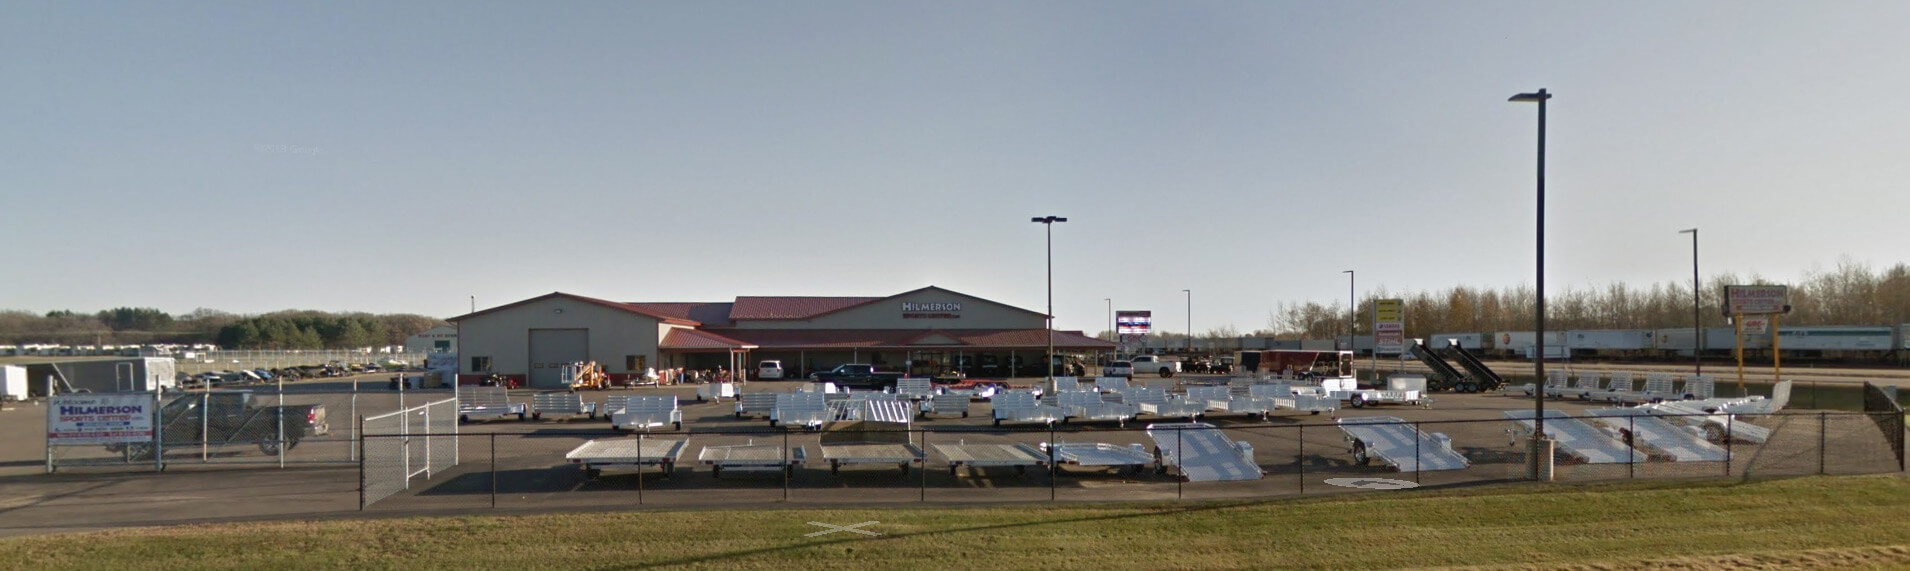 Hilmerson Sports Center in Little Falls, MN and General Rental Center of Little Falls, MN